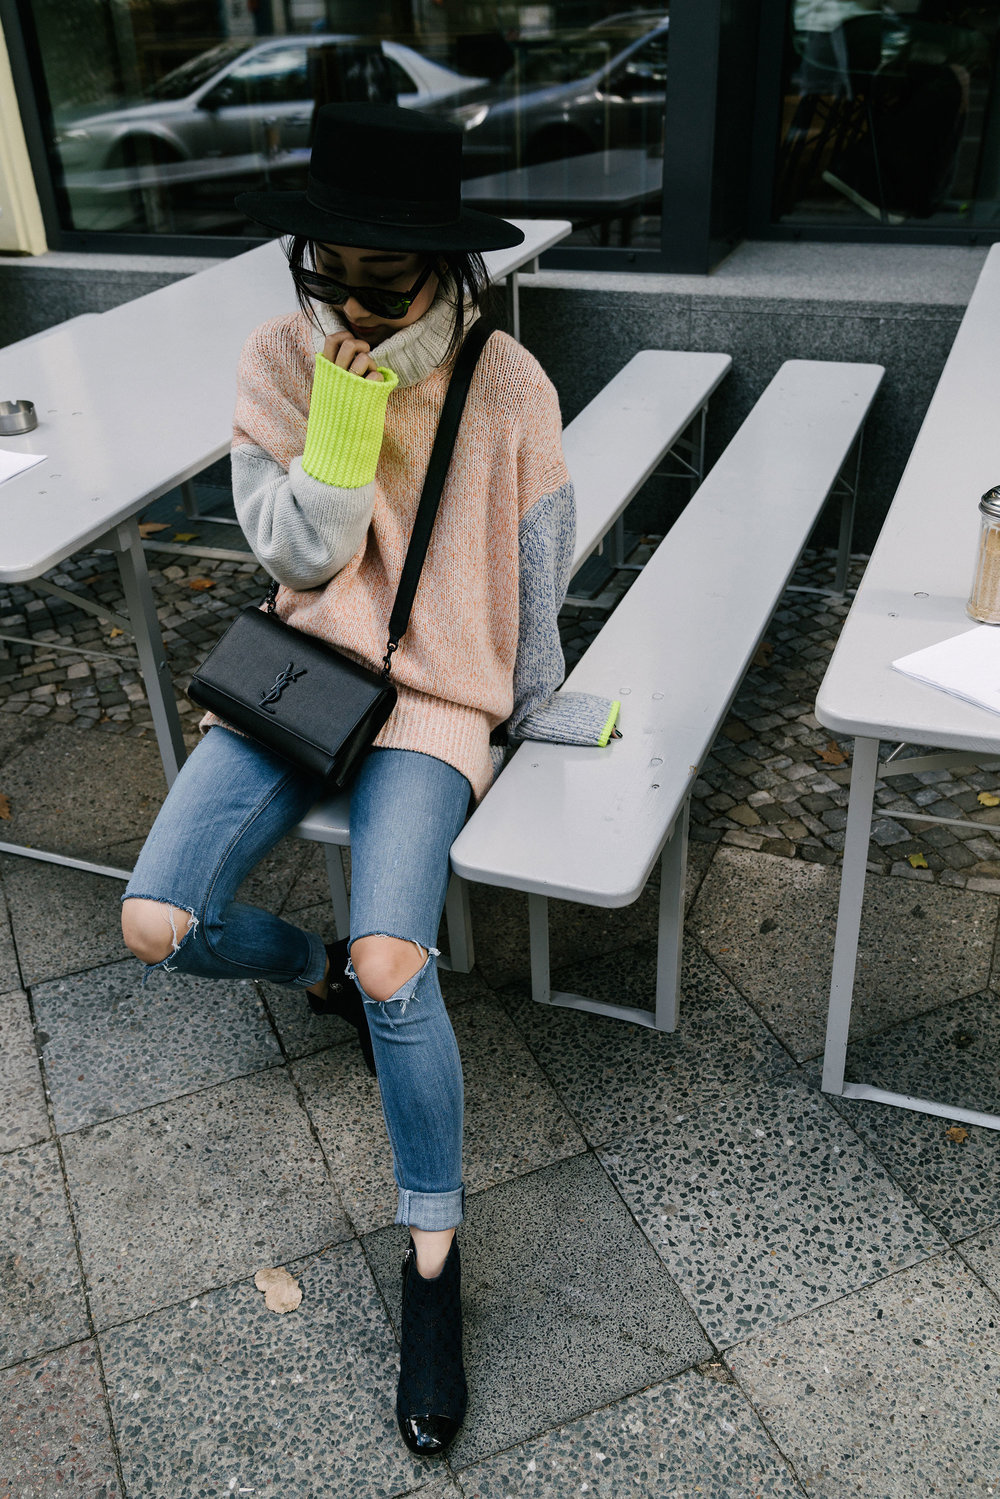 Tomorrowland Sweater, GRLFRND Denim, Chanel Shoes, Saint Laurent Bag, Janessa Leone Hat, Céline Sunglasses